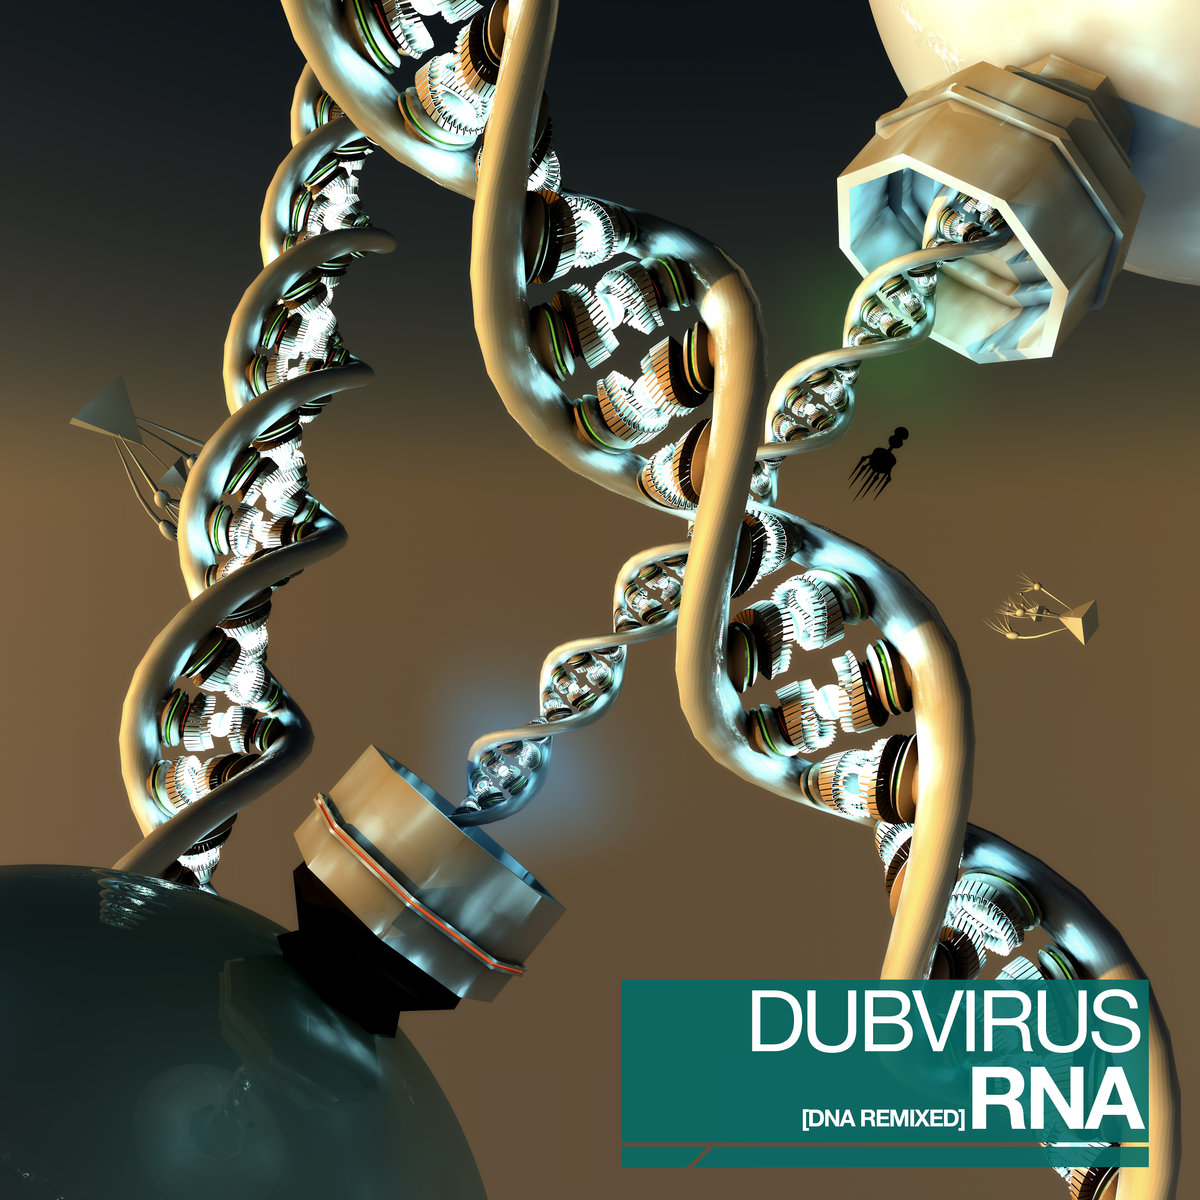 Dubvirus - Rising Sign (Mr. Jennings Remix) @ 'RNA (DNA Remixed)' album (bass, dubvirus)